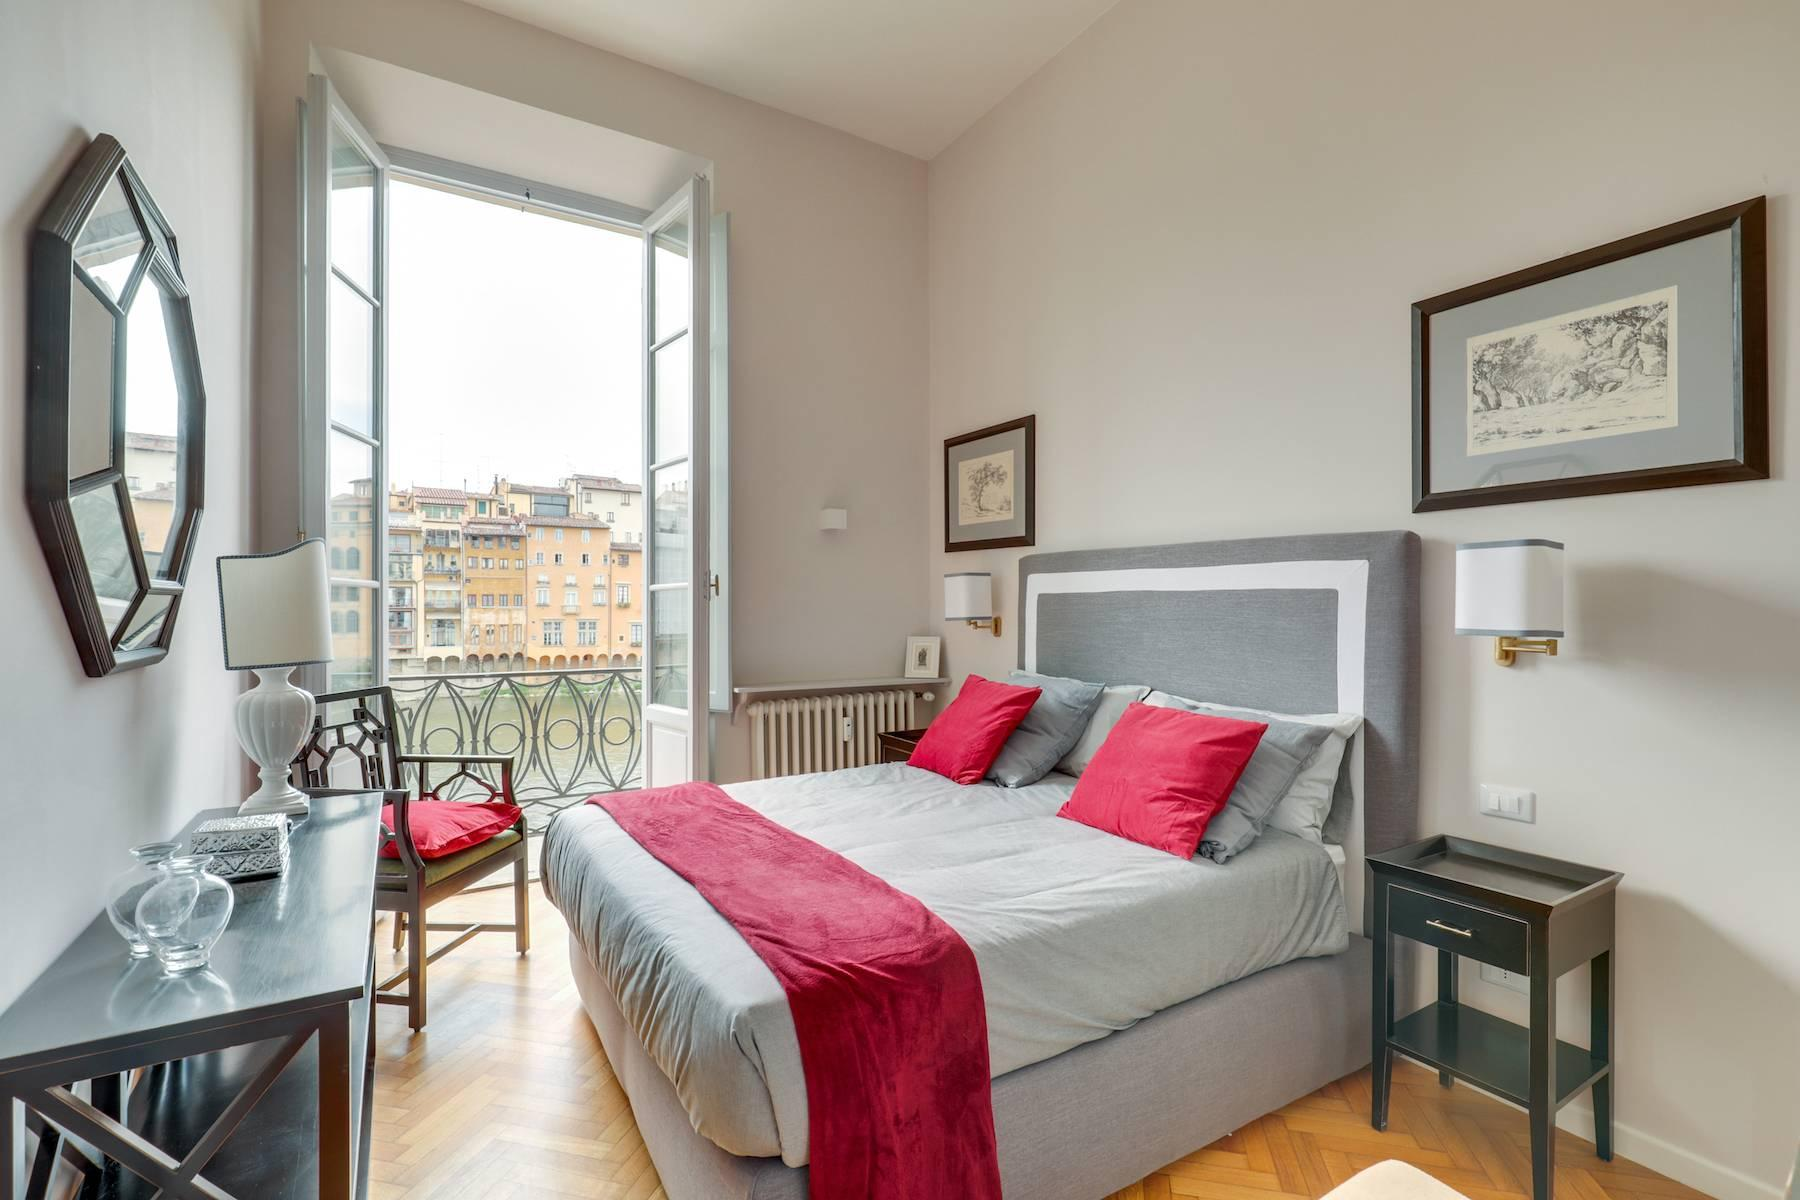 Beautifully renovated apartment overlooking Ponte Vecchio - 10